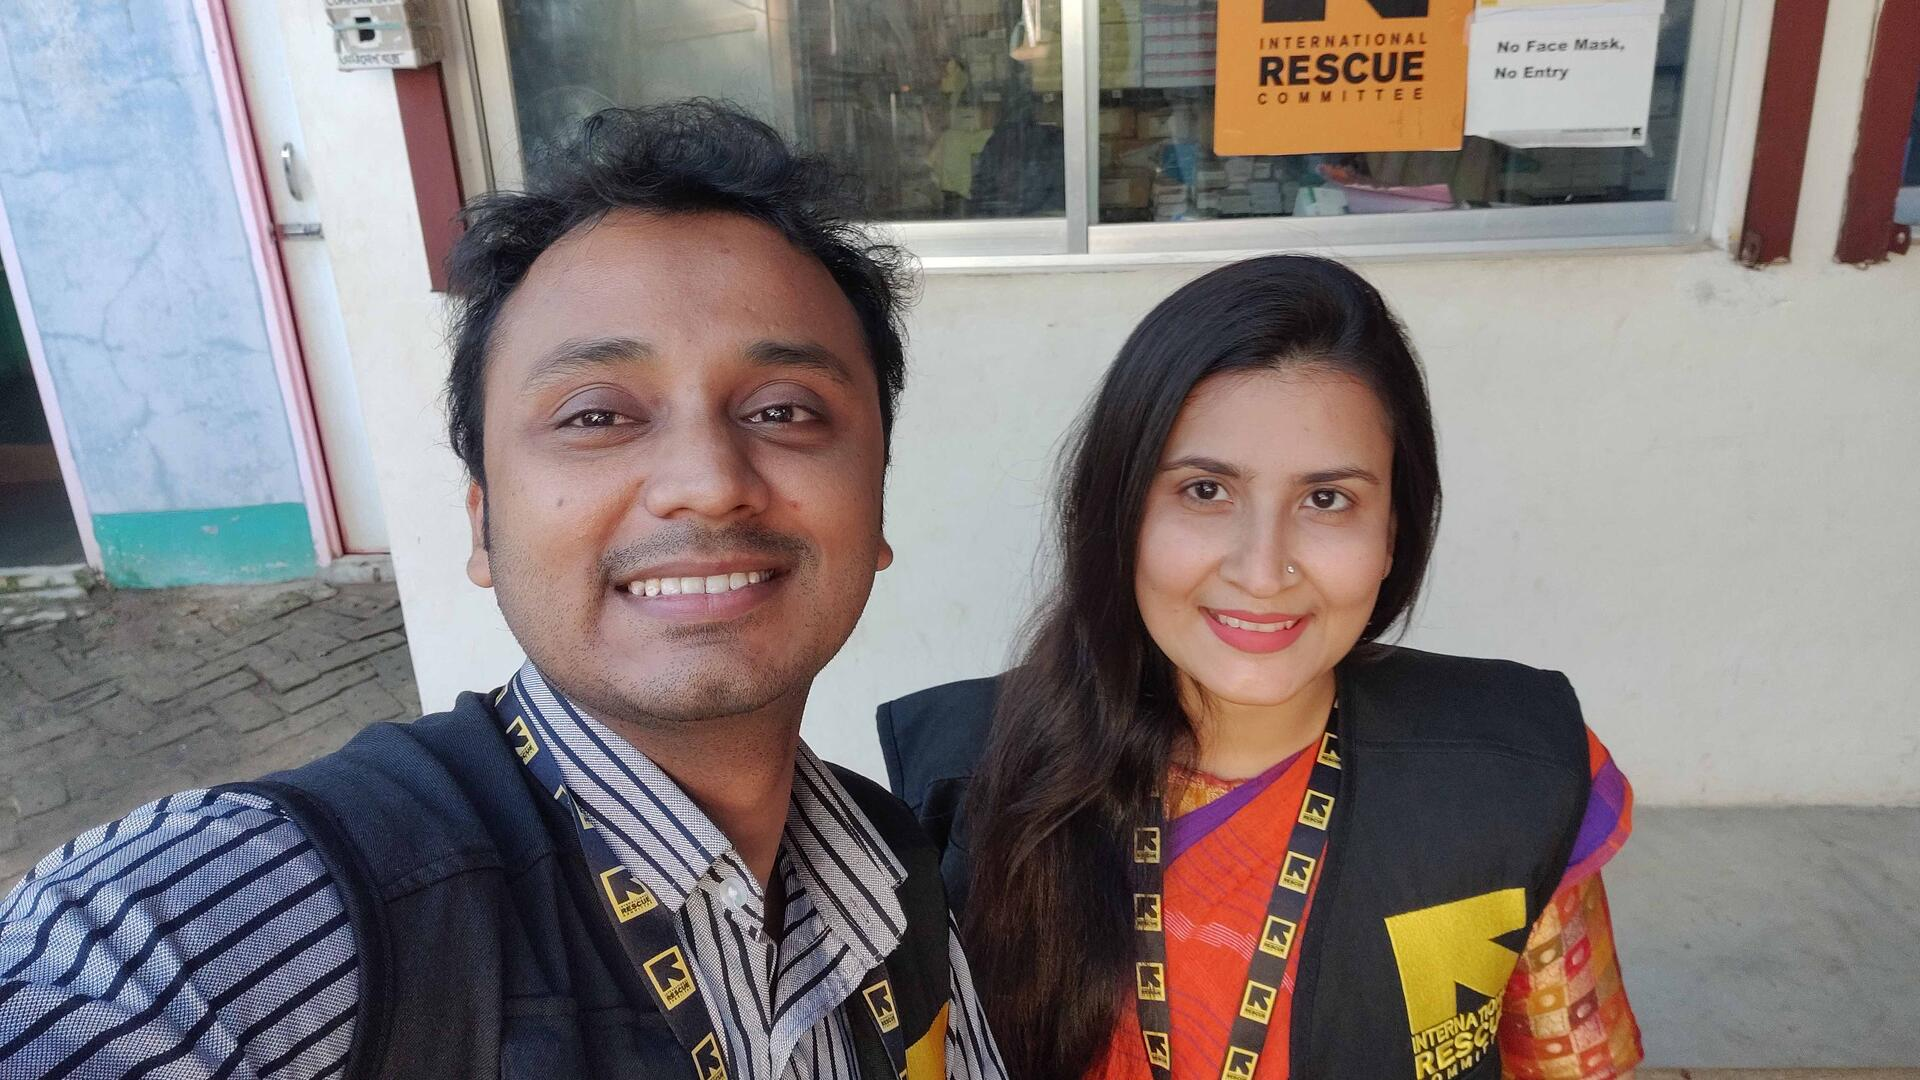 Selfie of Dr Muminul Haque Munna and Dr Ramima Afrin Pinky who work for the IRC in Bangladesh